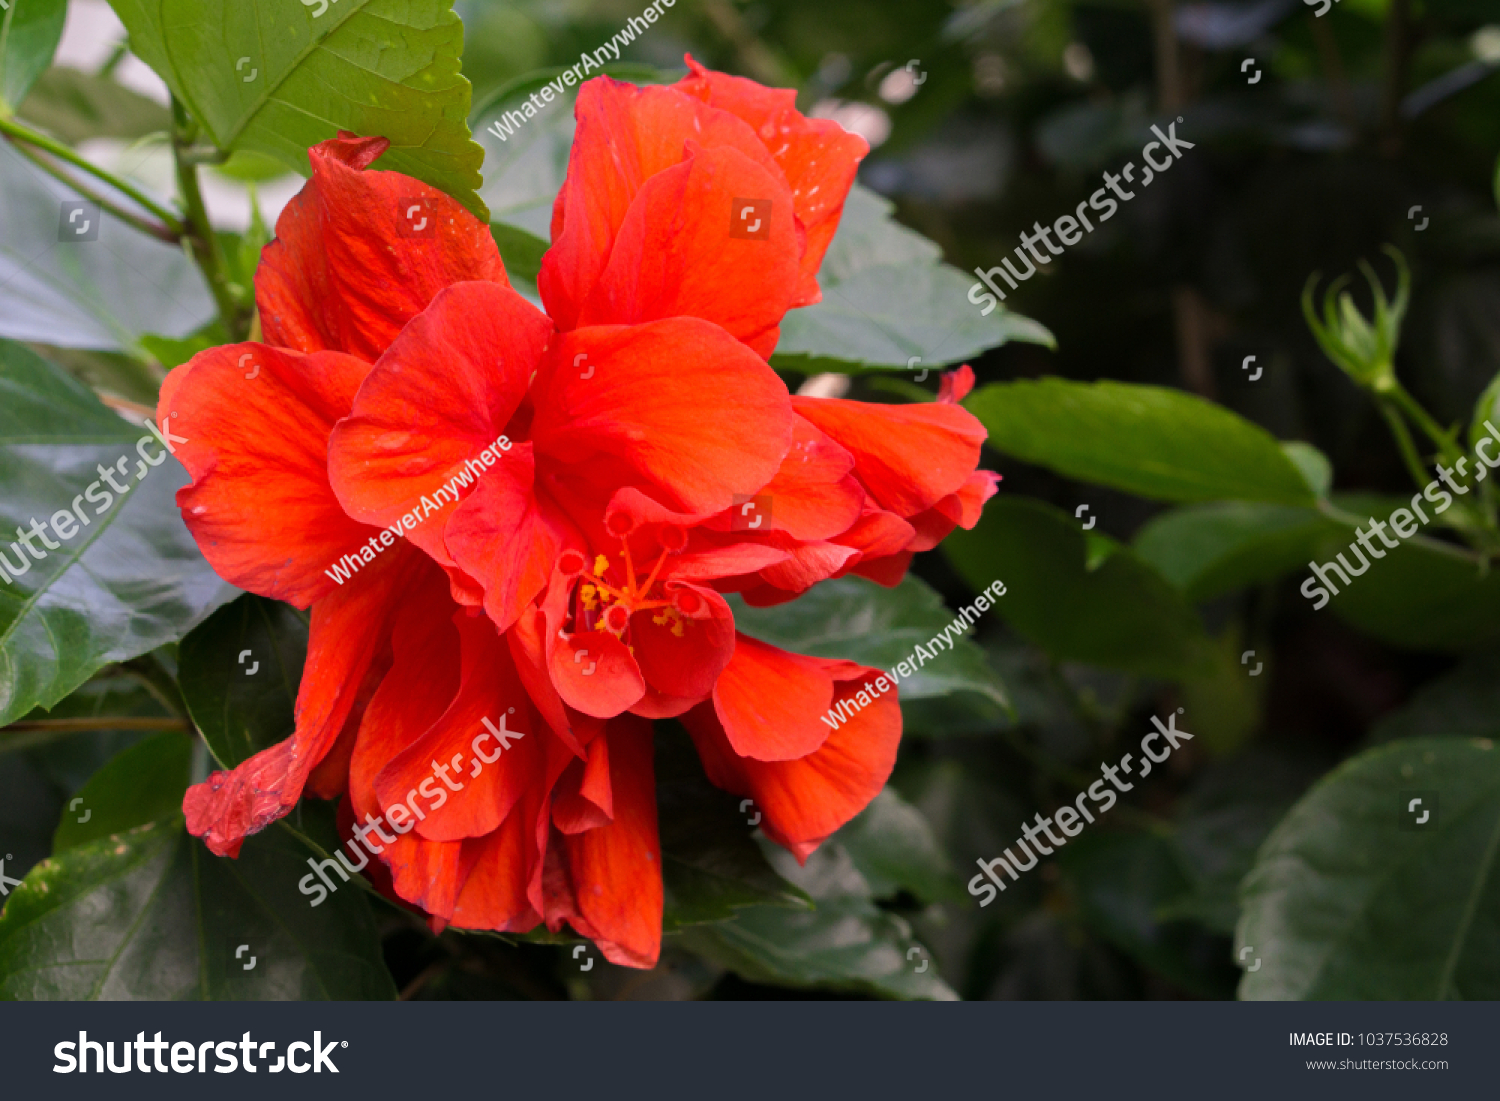 This beautiful red flower can be called chinese rose gudhal chaba id 1037536828 izmirmasajfo